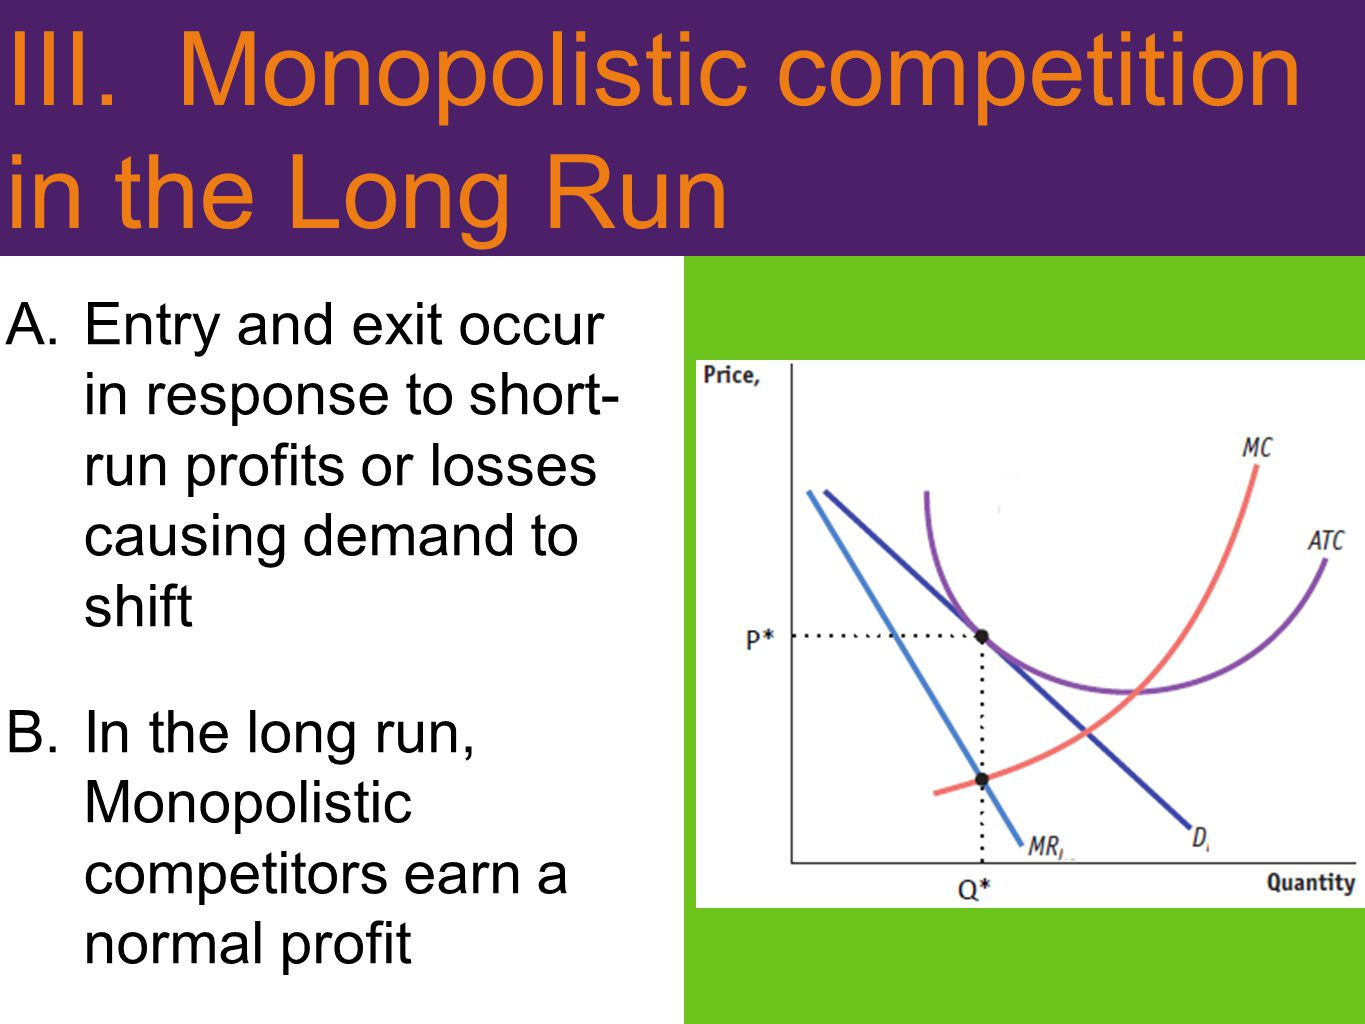 III. Monopolistic competition in the Long Run